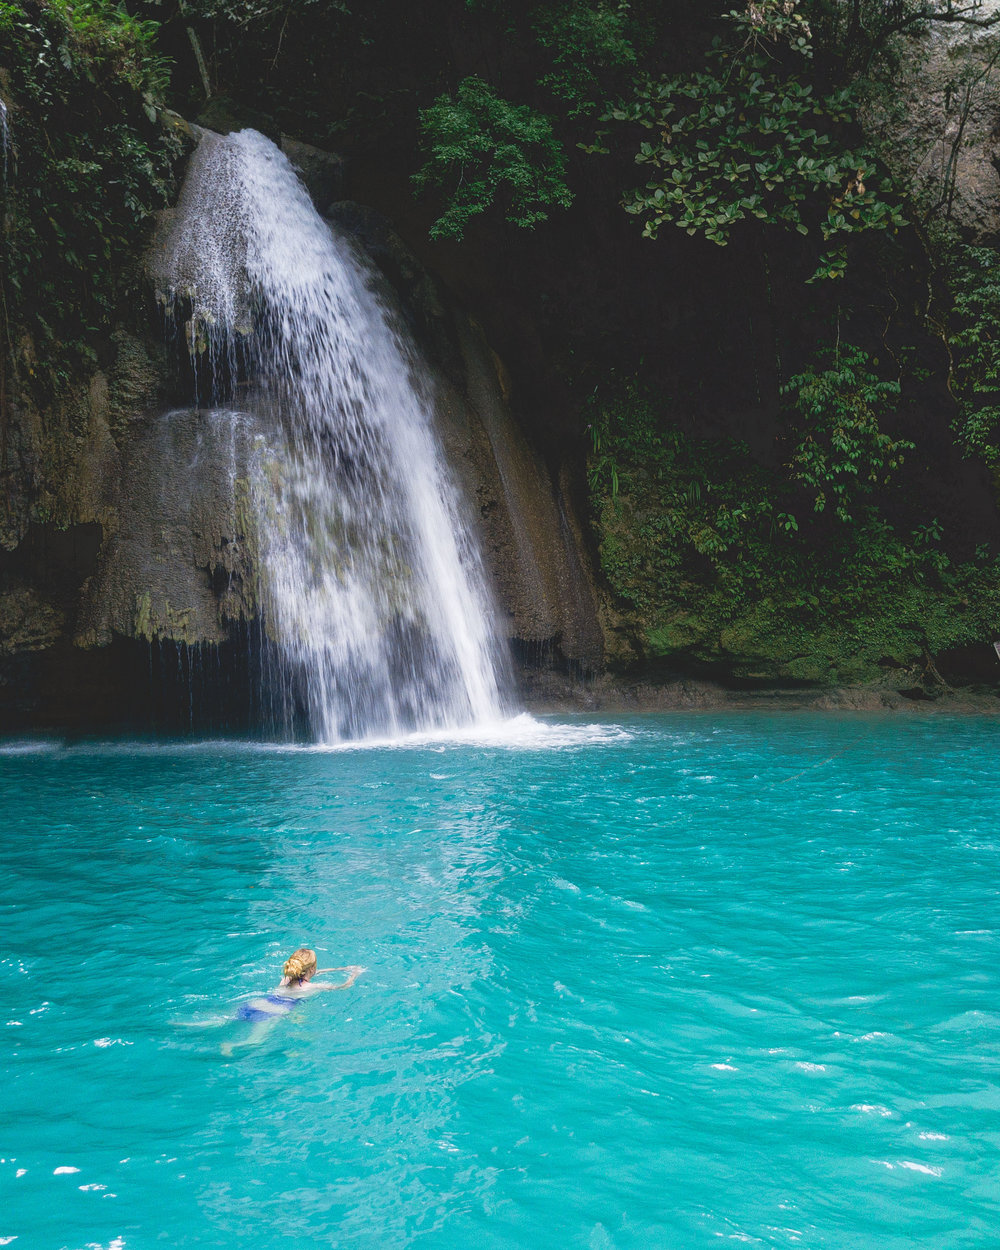 The beautiful Kawasan Falls in Cebu